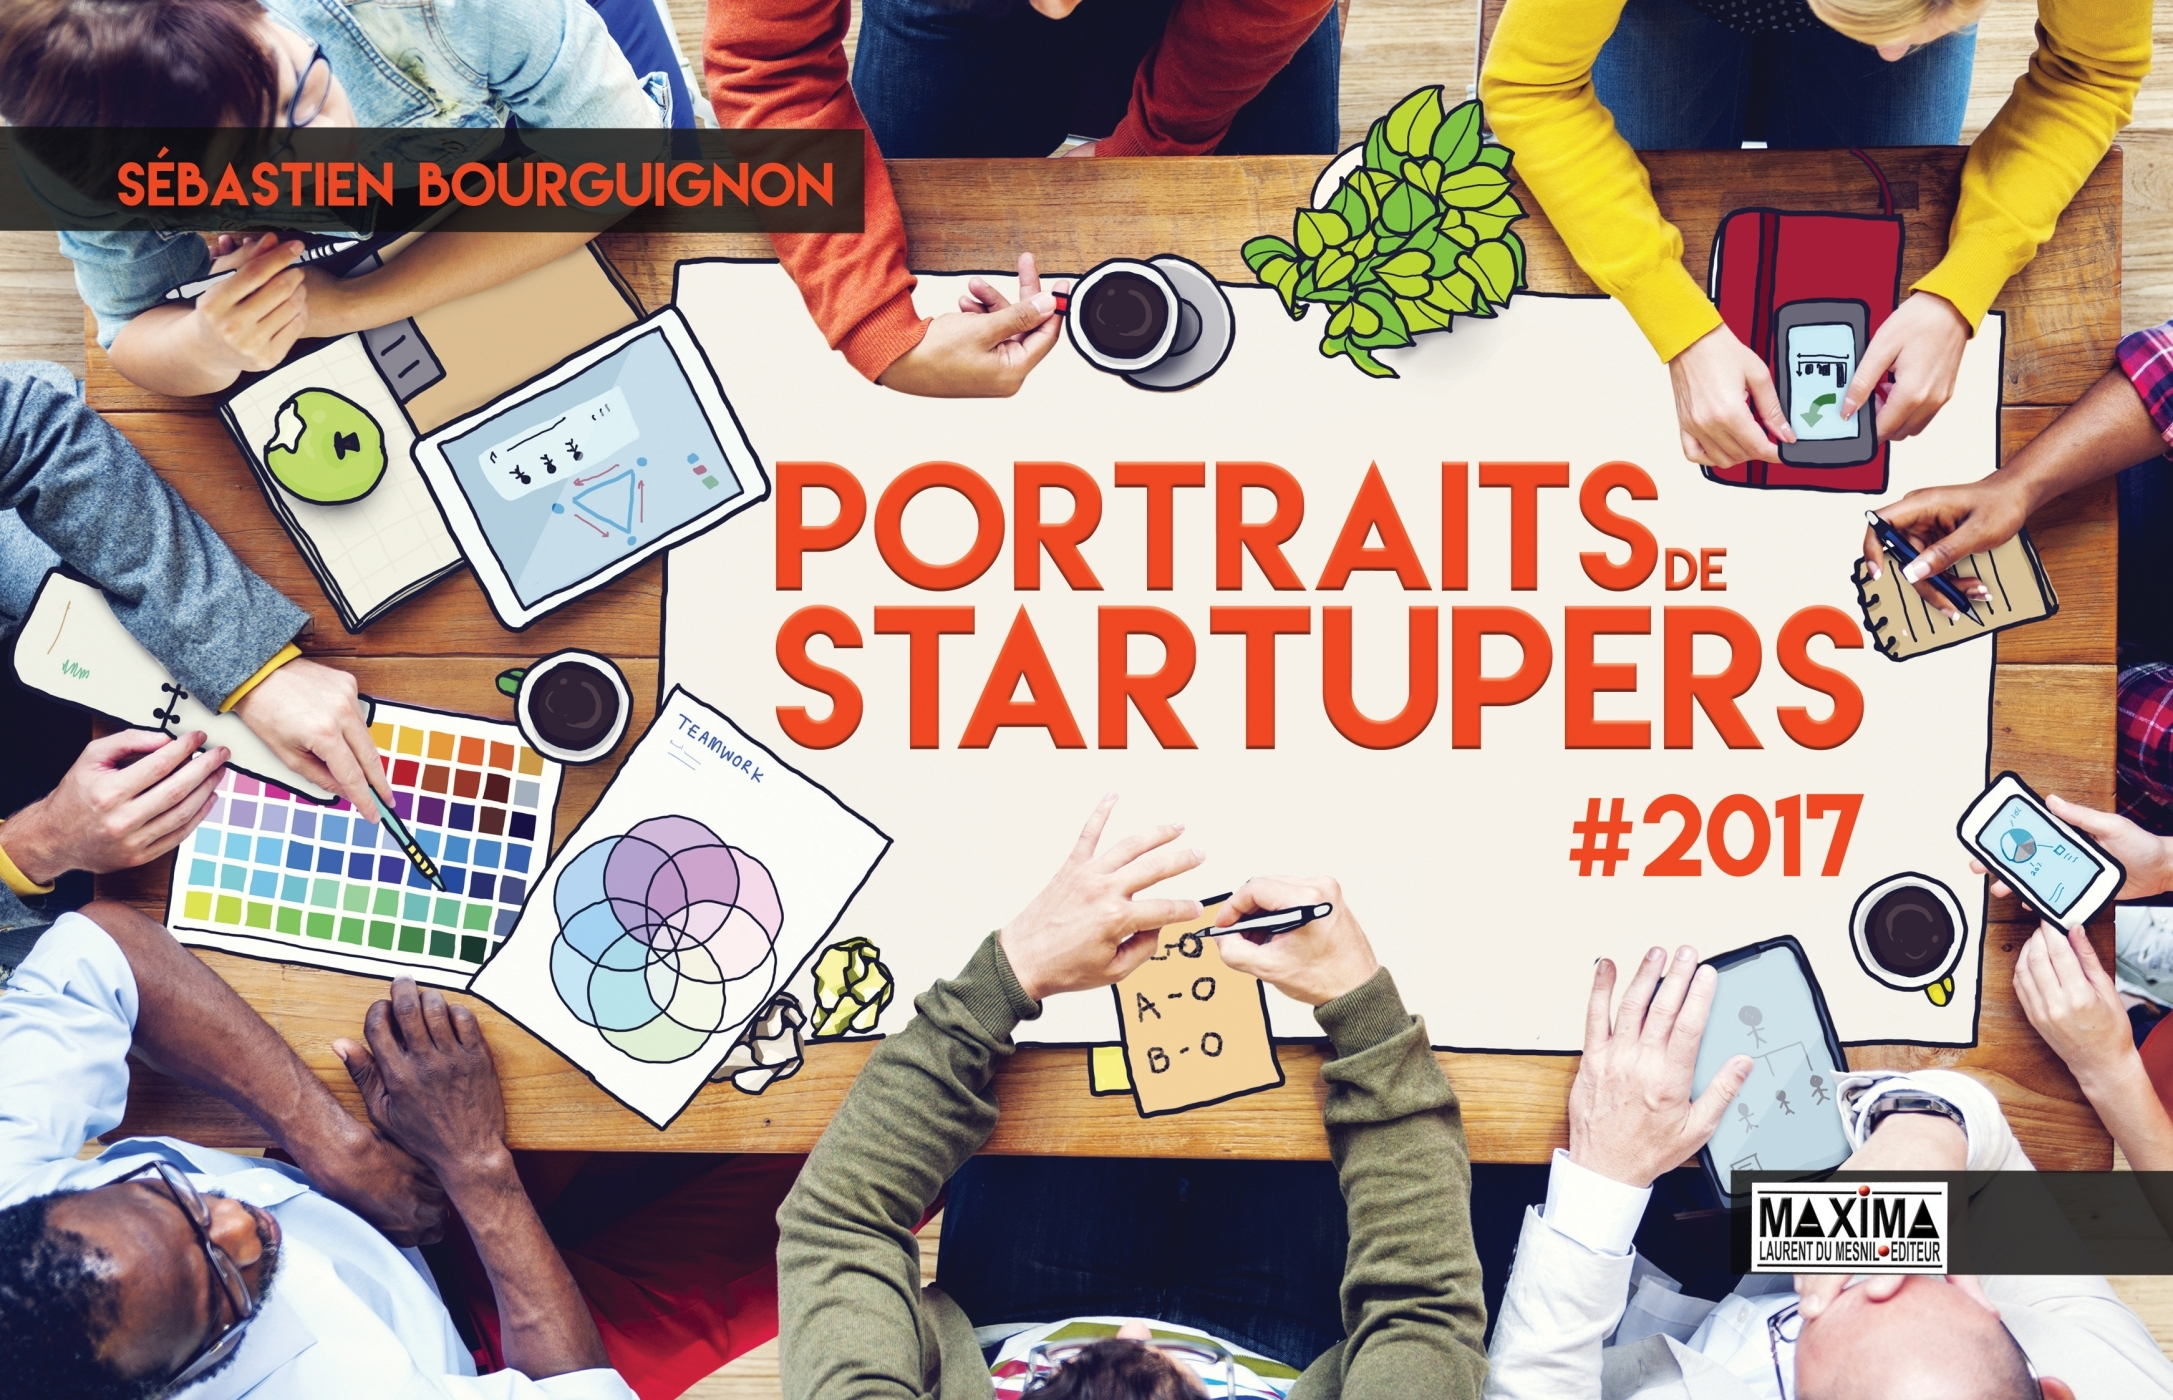 PORTRAITS DE STARTUPERS #2017